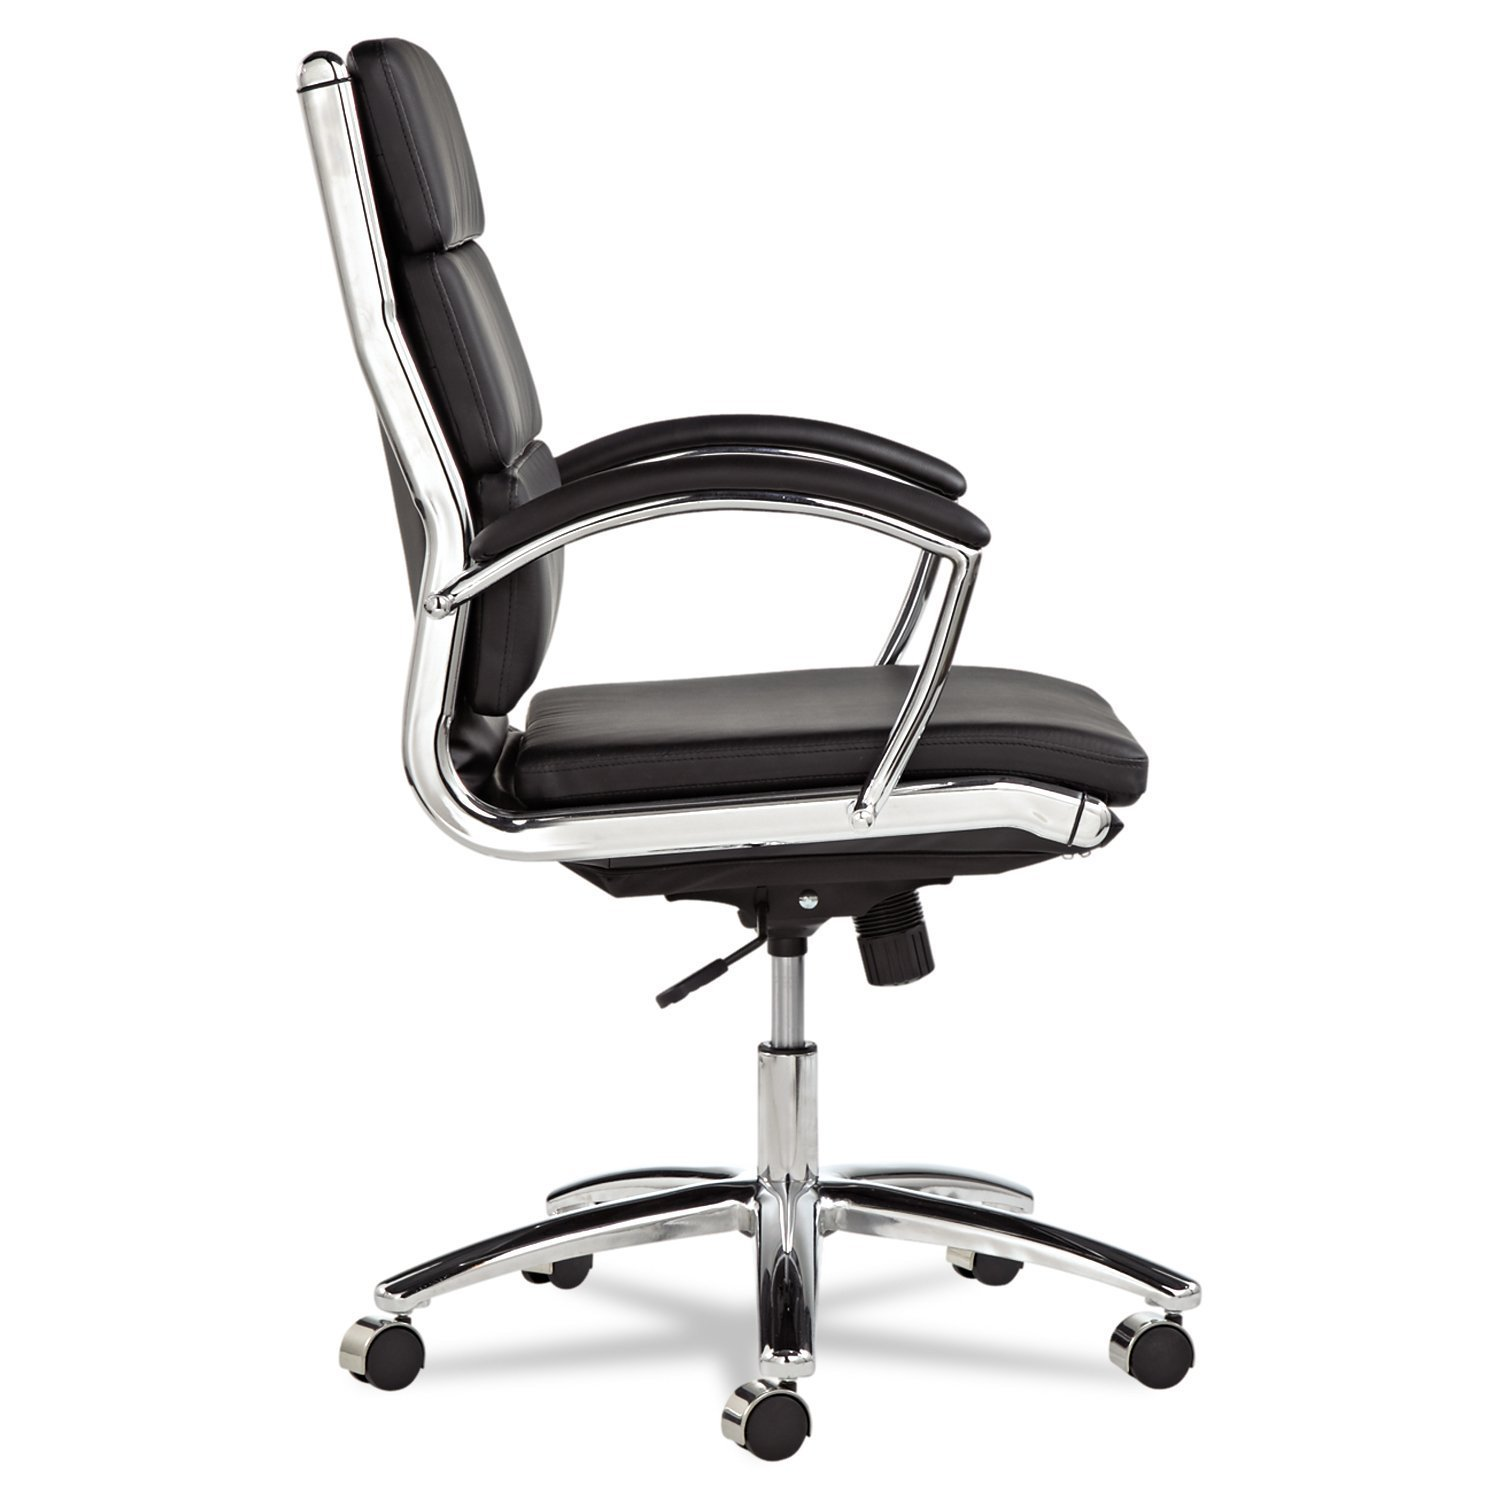 Alera Nerotali Has Come Up With The Best In Lass Leather Conference Room  Chairs That Not Only Have A Slim Profile, But Are Also Ergonomically  Designed To ...